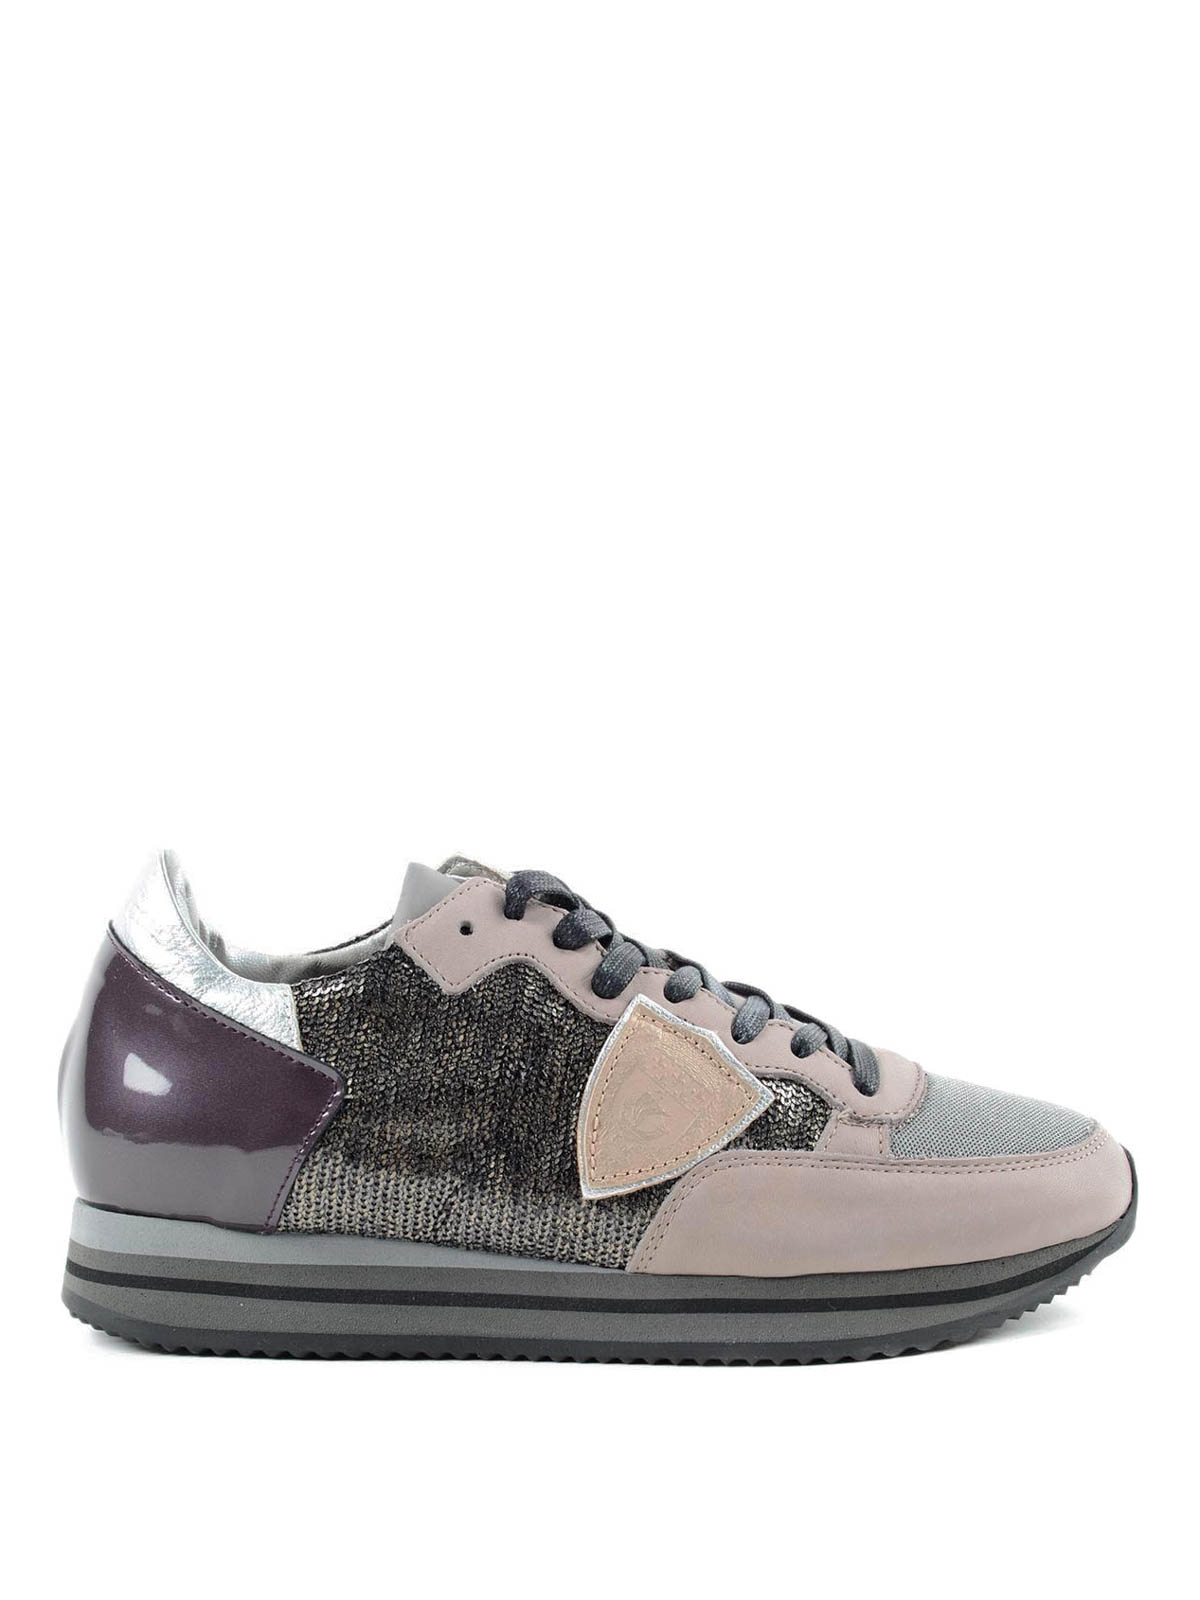 sequined multicolour sneakers by philippe model trainers ikrix. Black Bedroom Furniture Sets. Home Design Ideas